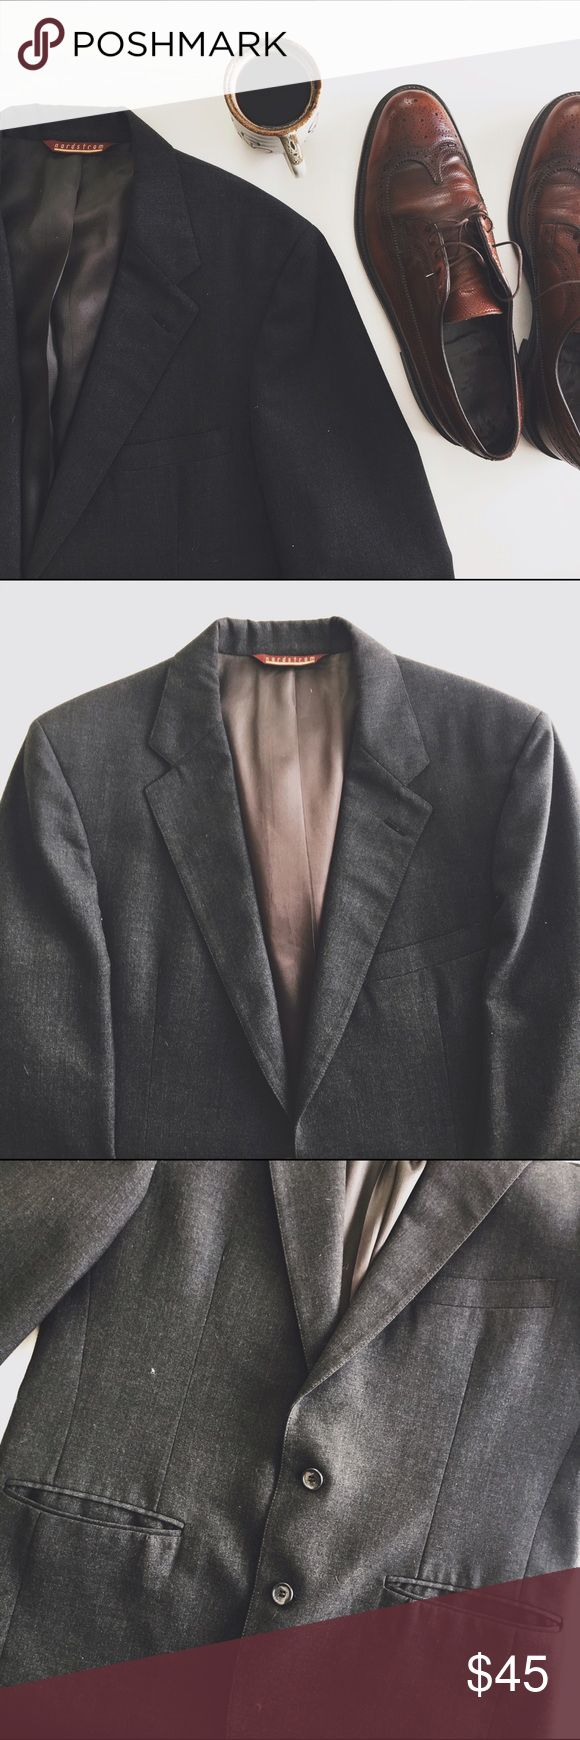 Nordstrom gray suit jacket Nordstrom suit jacket in dark/charcoal gray, in like-new condition. Features two buttons, two pockets, and silky interior. No size given, but I'd say it's a men's medium...ask for additional measurements Nordstrom Suits & Blazers Suits